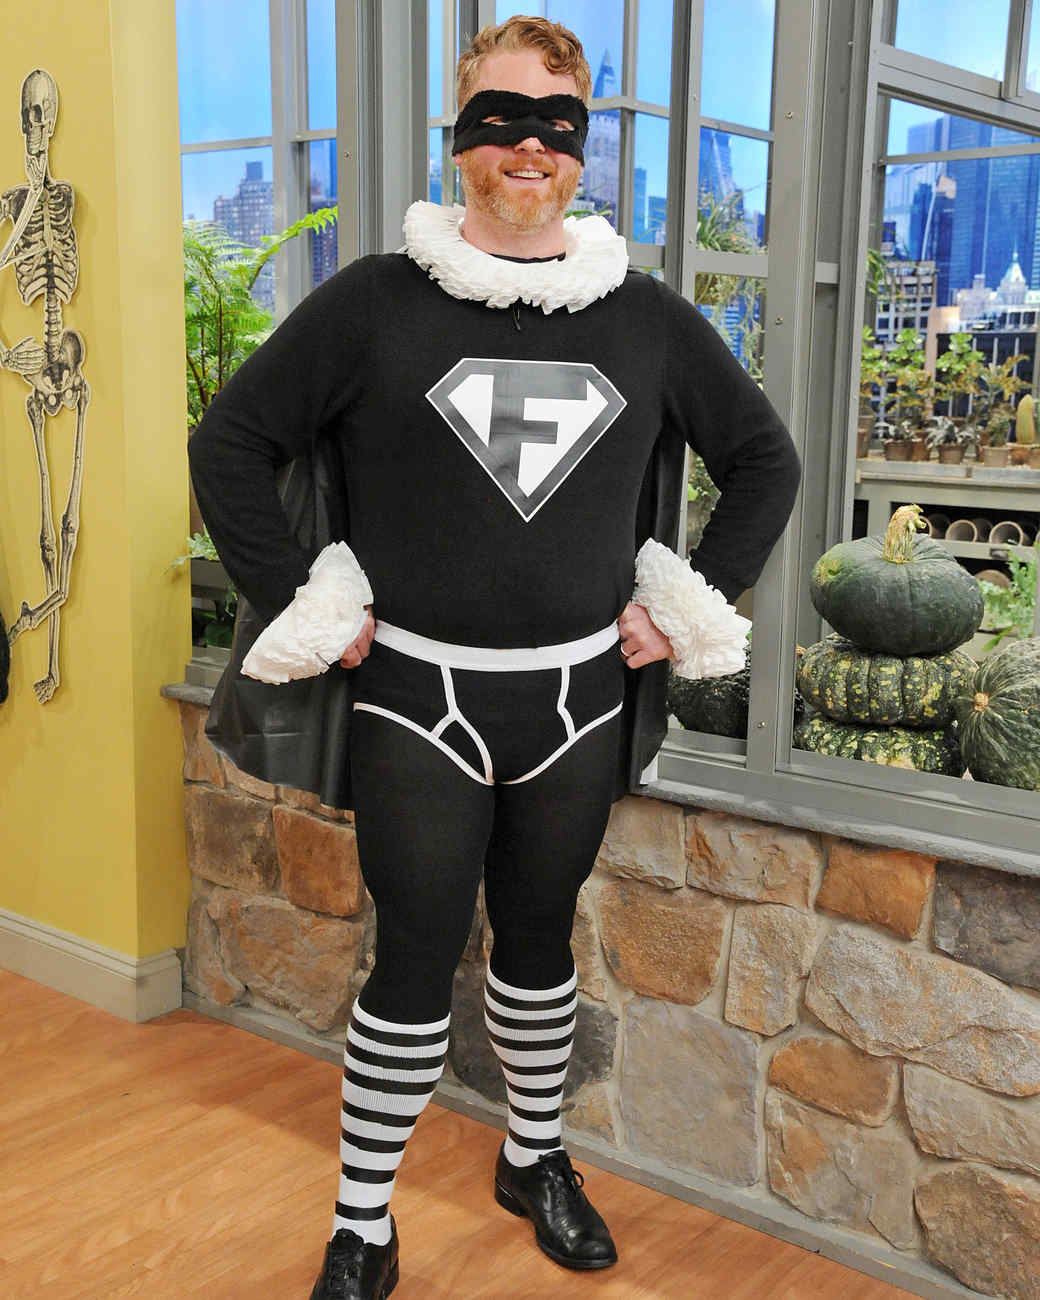 super-hero-costume-mslb7008.jpg